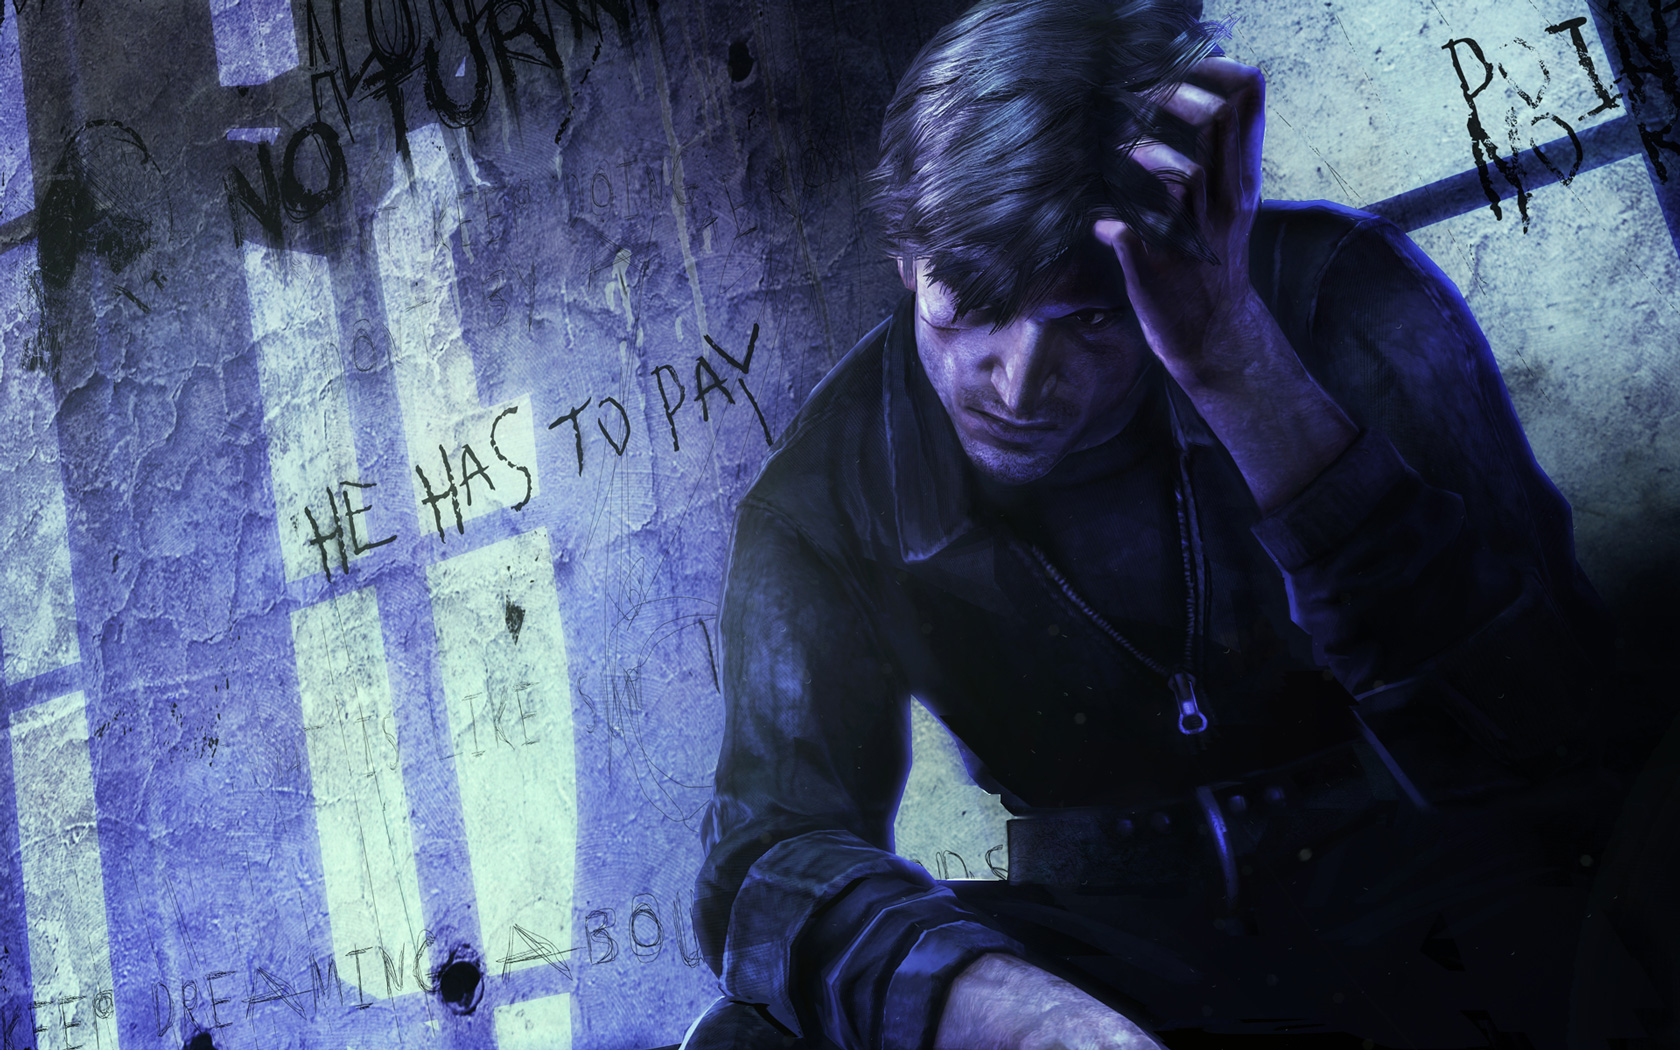 Silent Hill: Downpour Wallpaper in 1680x1050